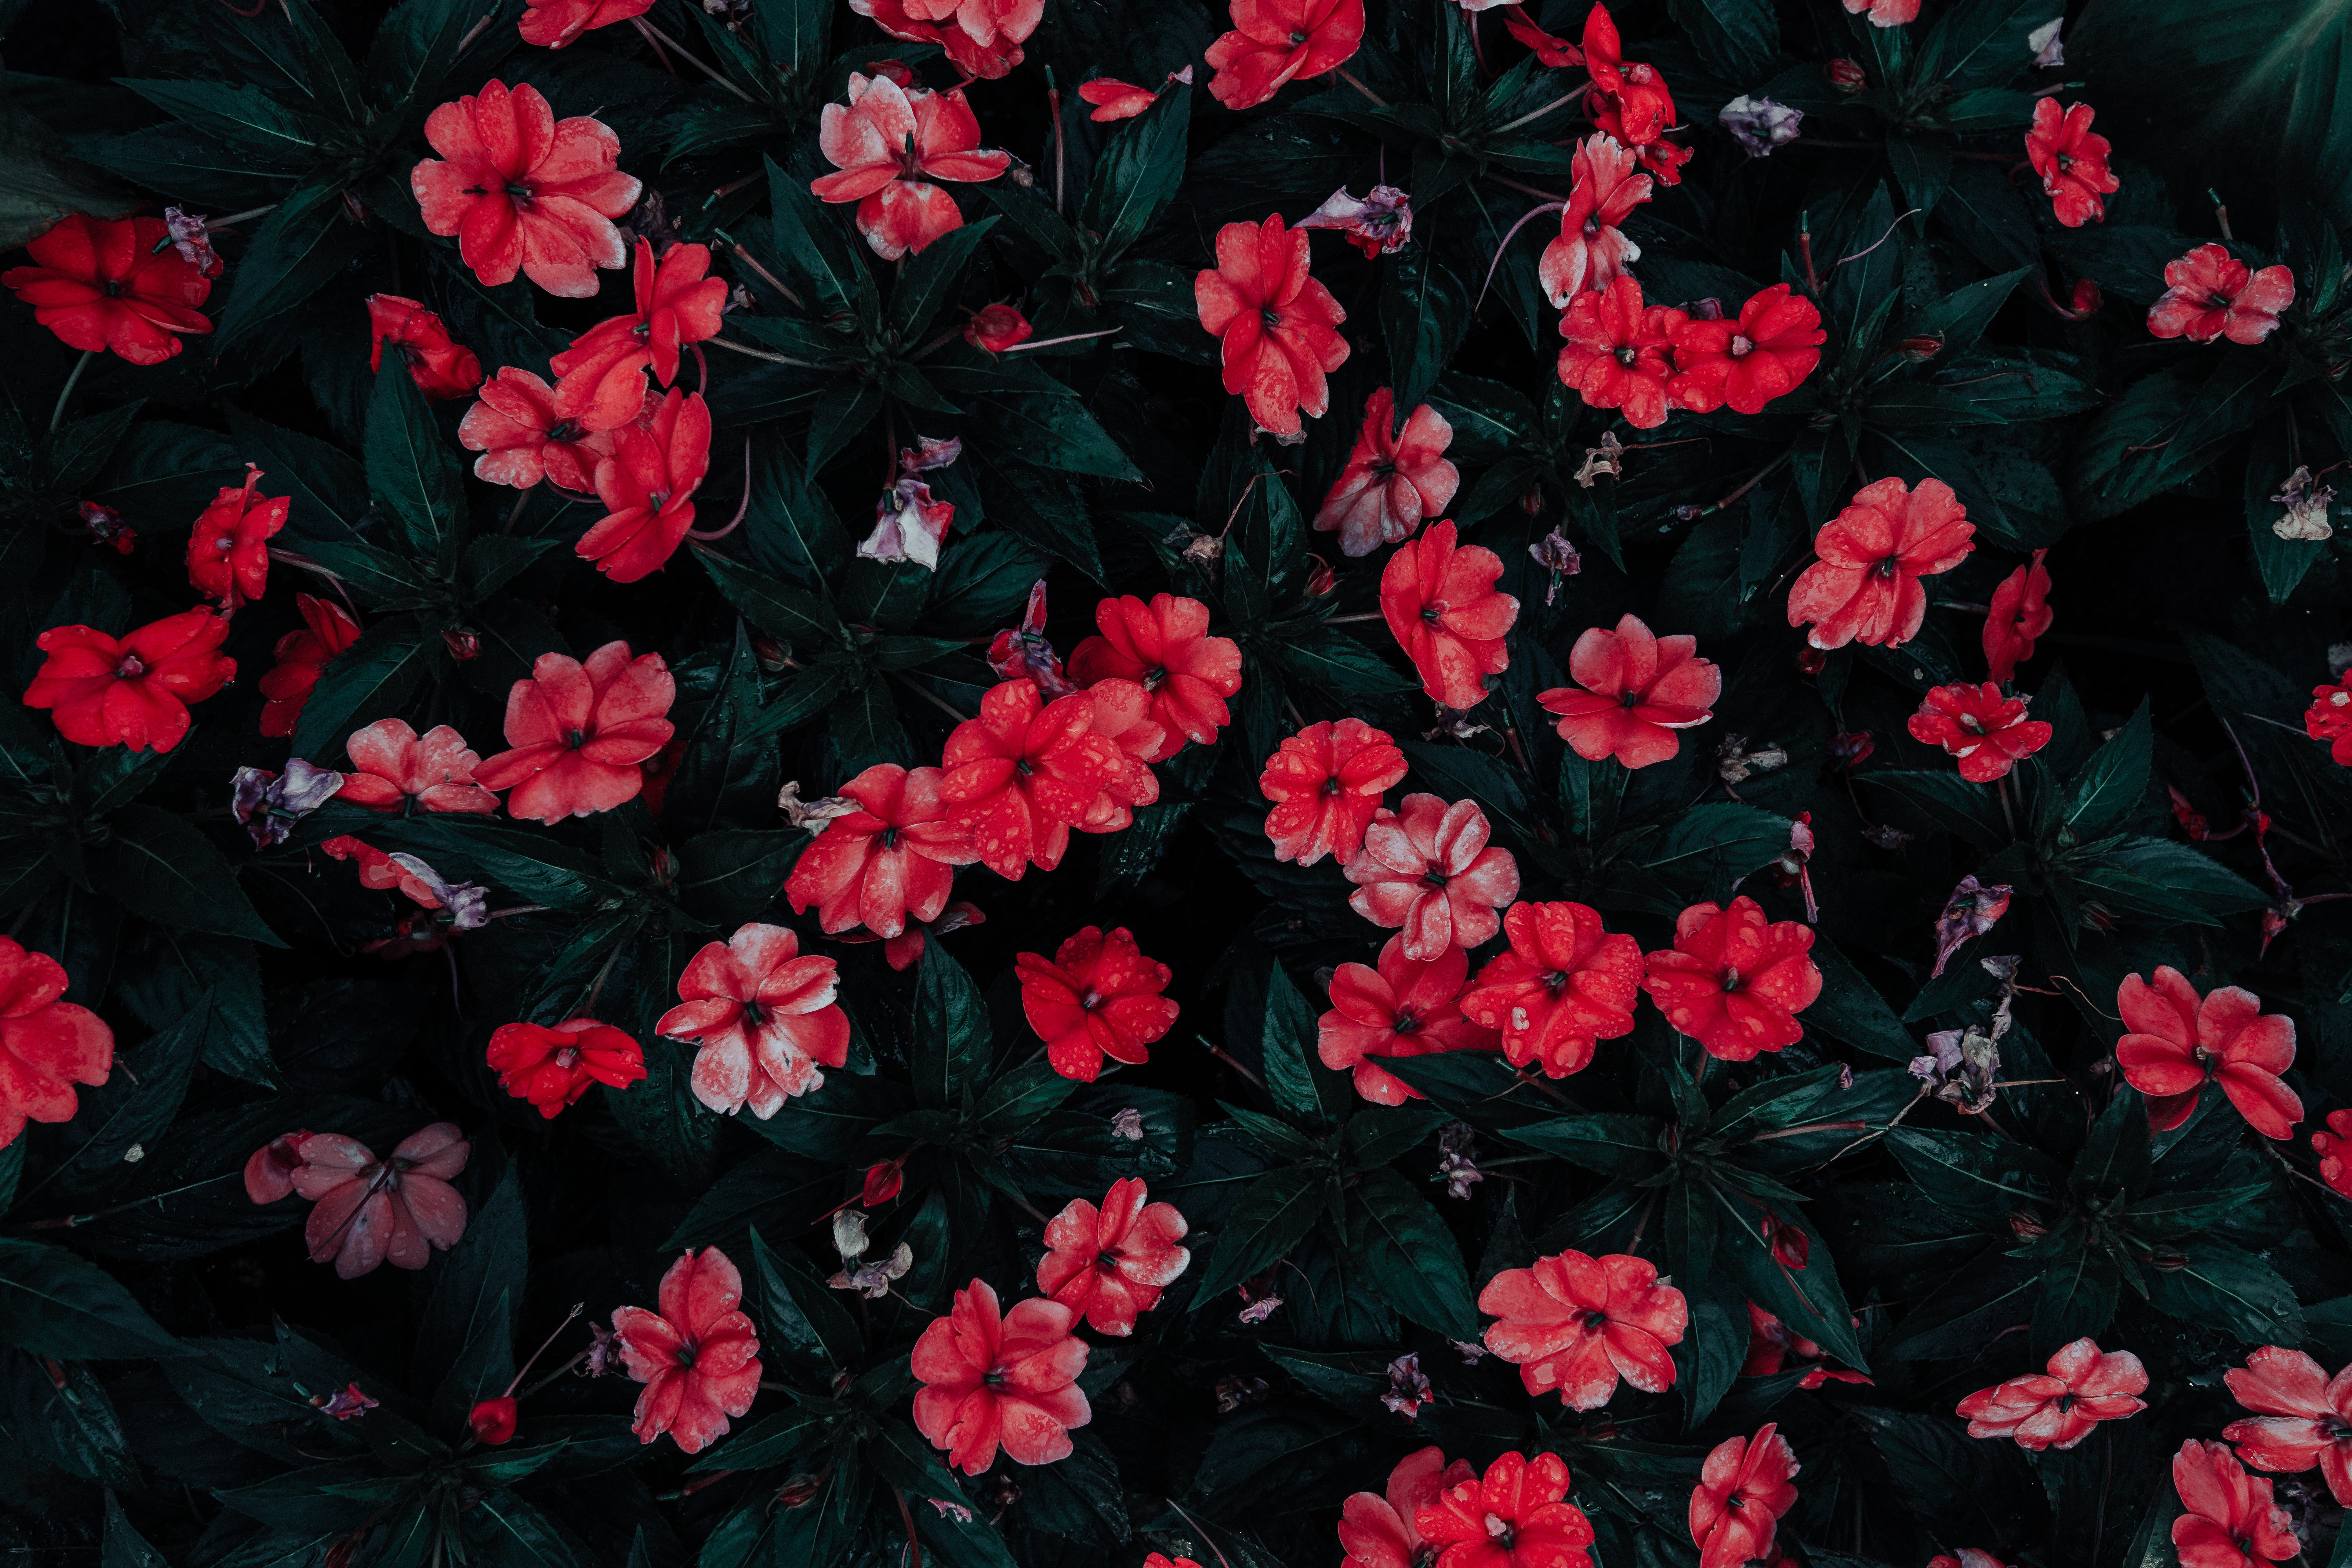 red petaled flowers in close-up photography